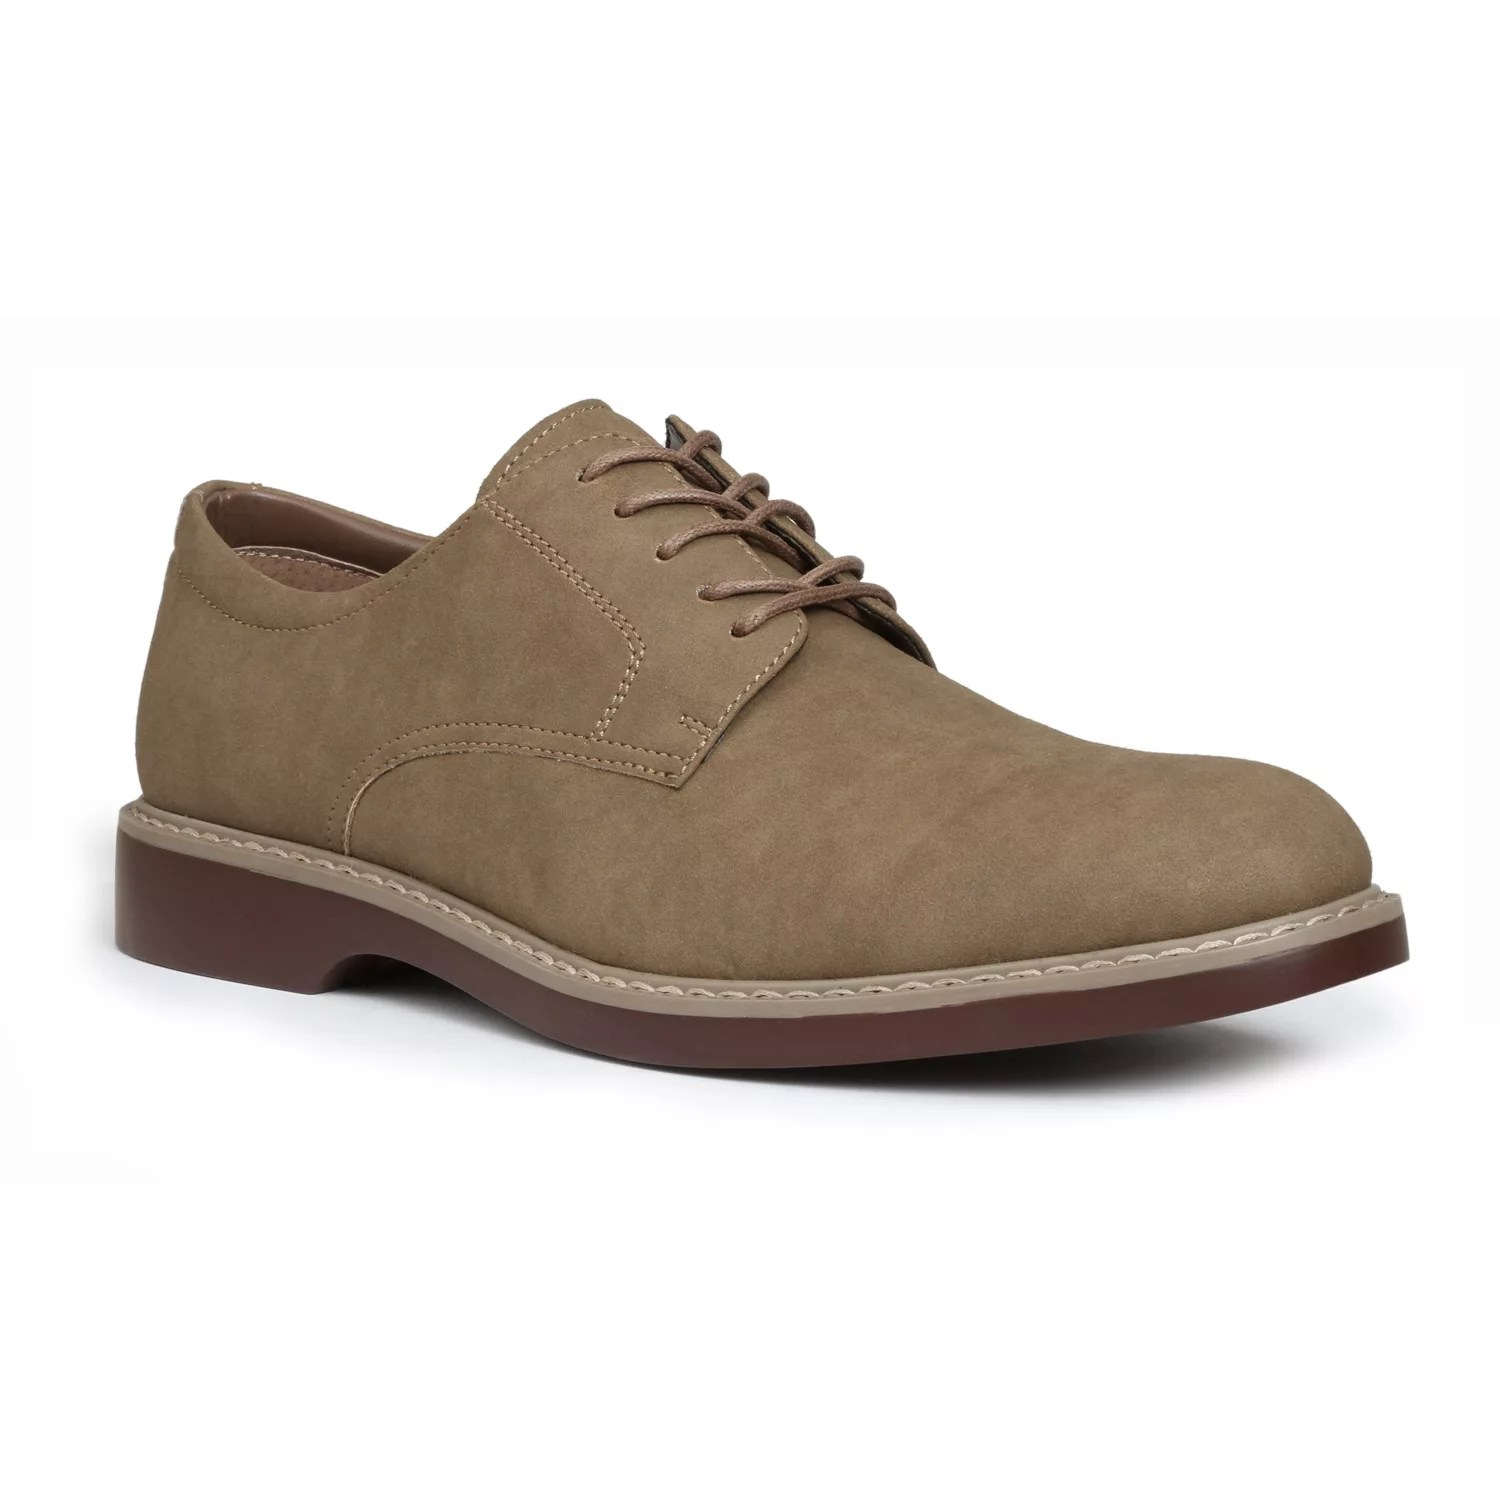 Izod palisade men   oxford shoes also kohl rh kohls